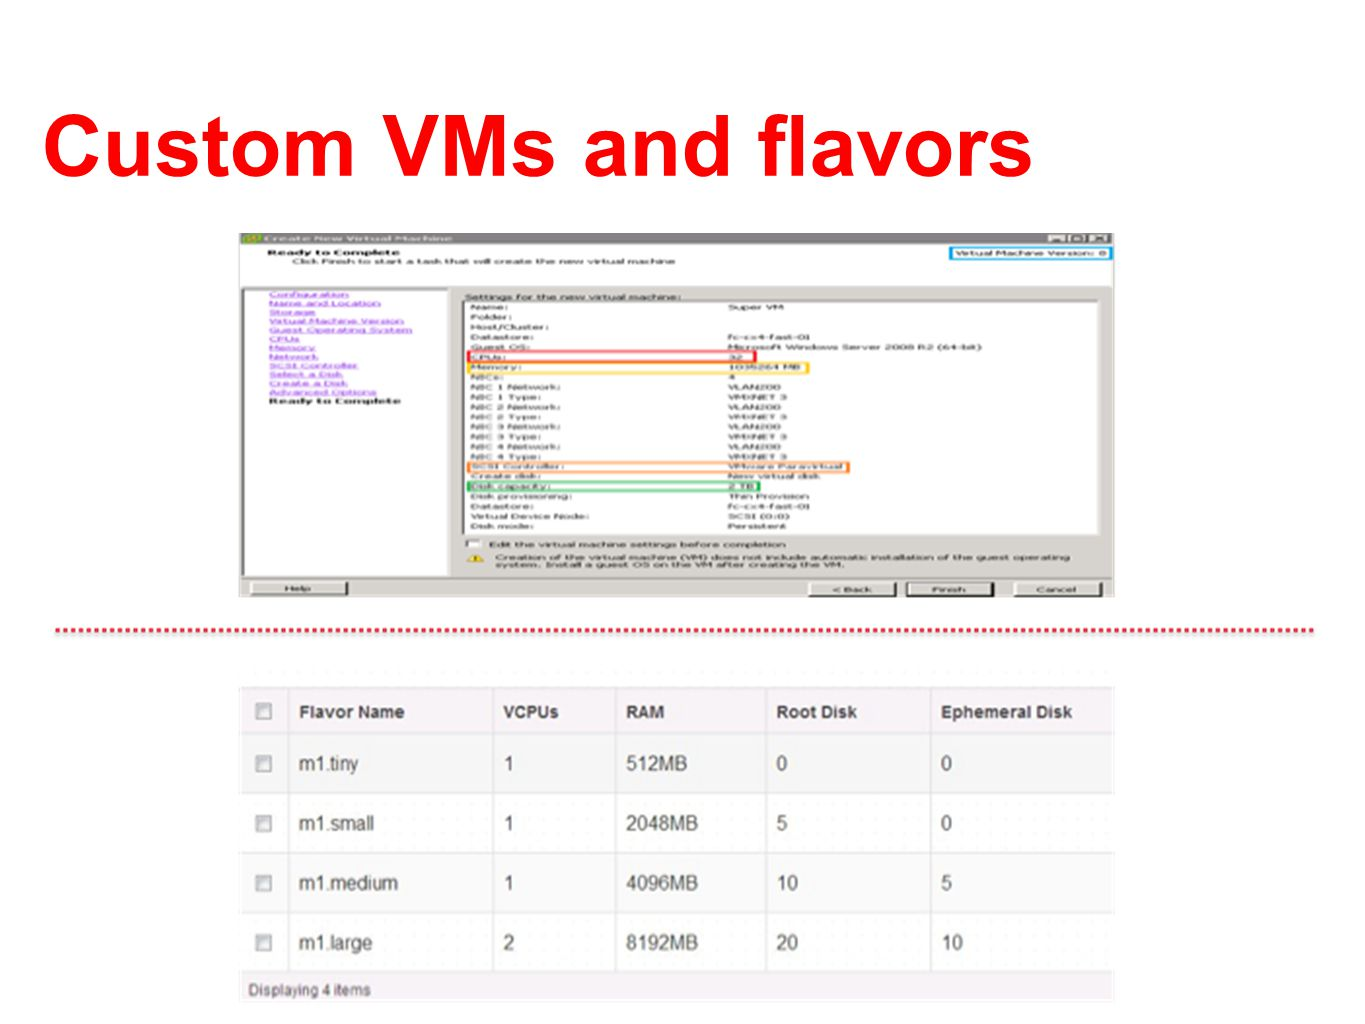 Custom VMs and flavors